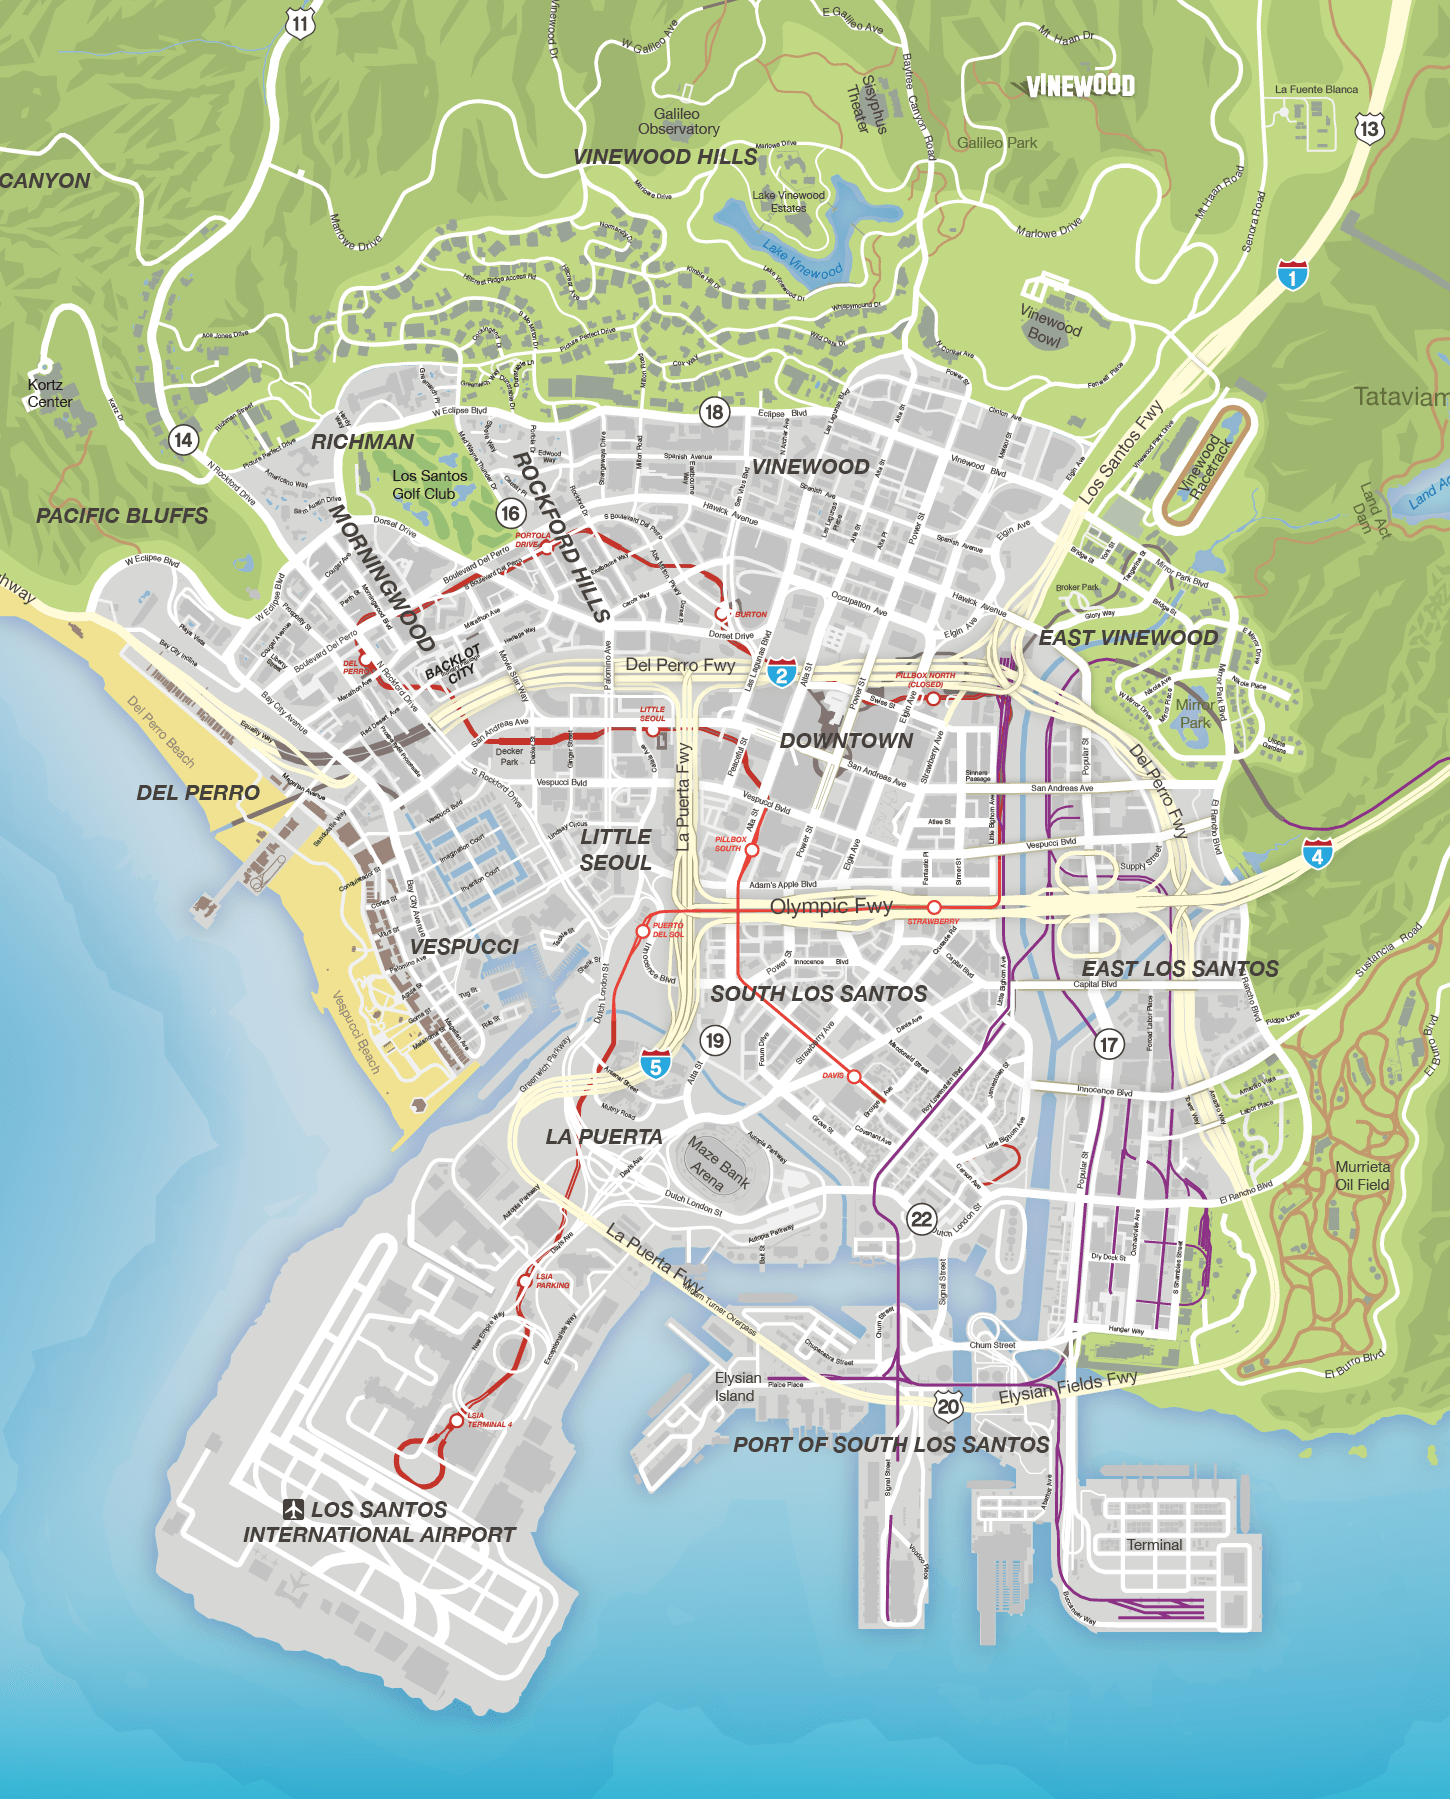 Gta V Map With Street Names : street, names, Street, Names, Catalog, Online